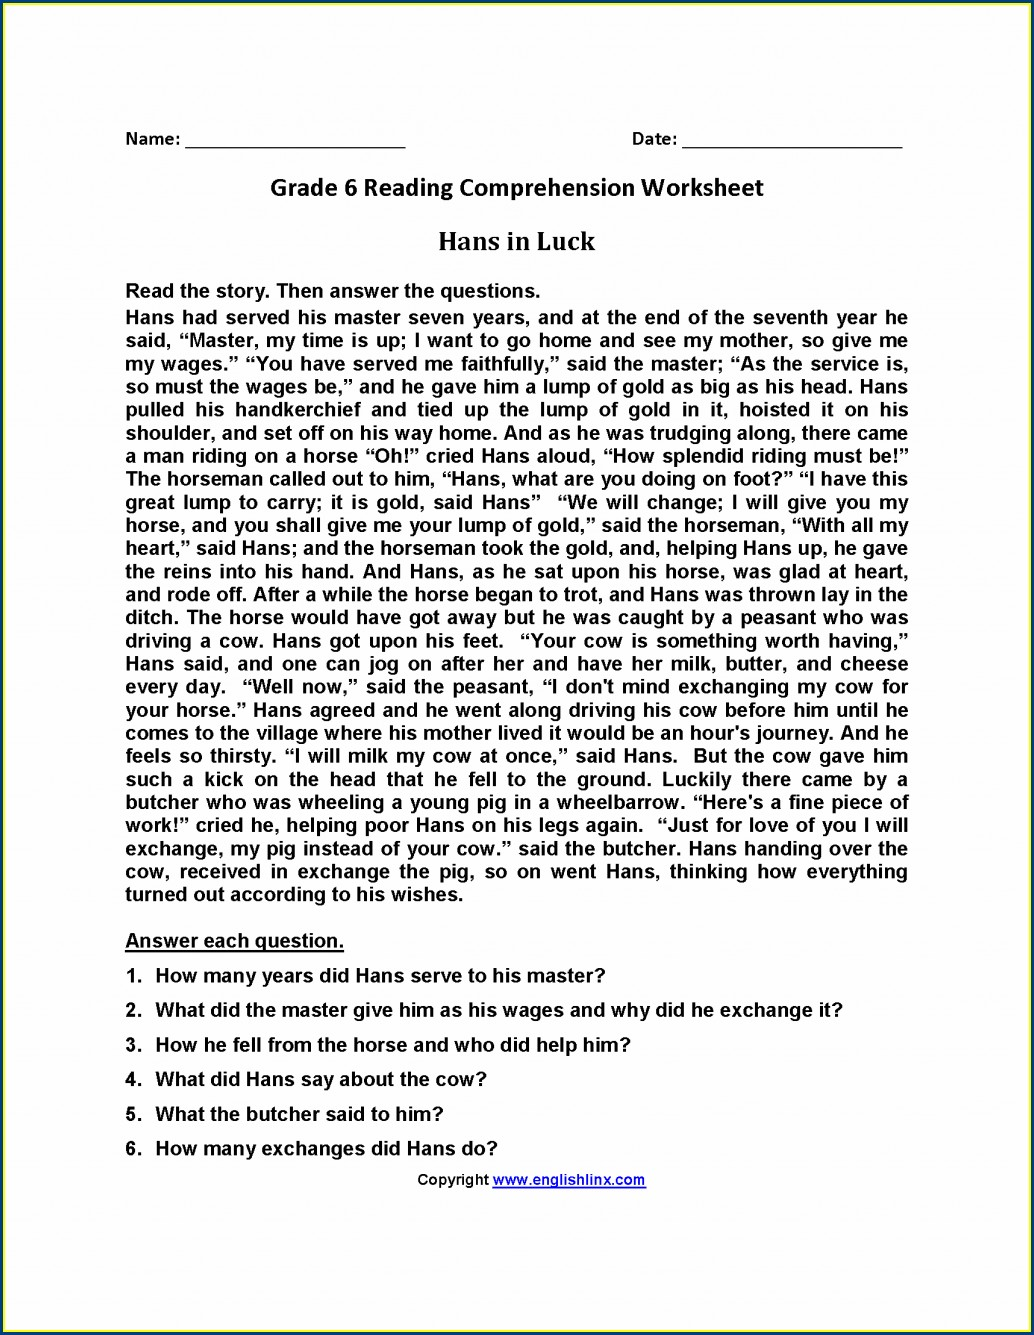 Reading Comprehension Worksheets Questions And Answers